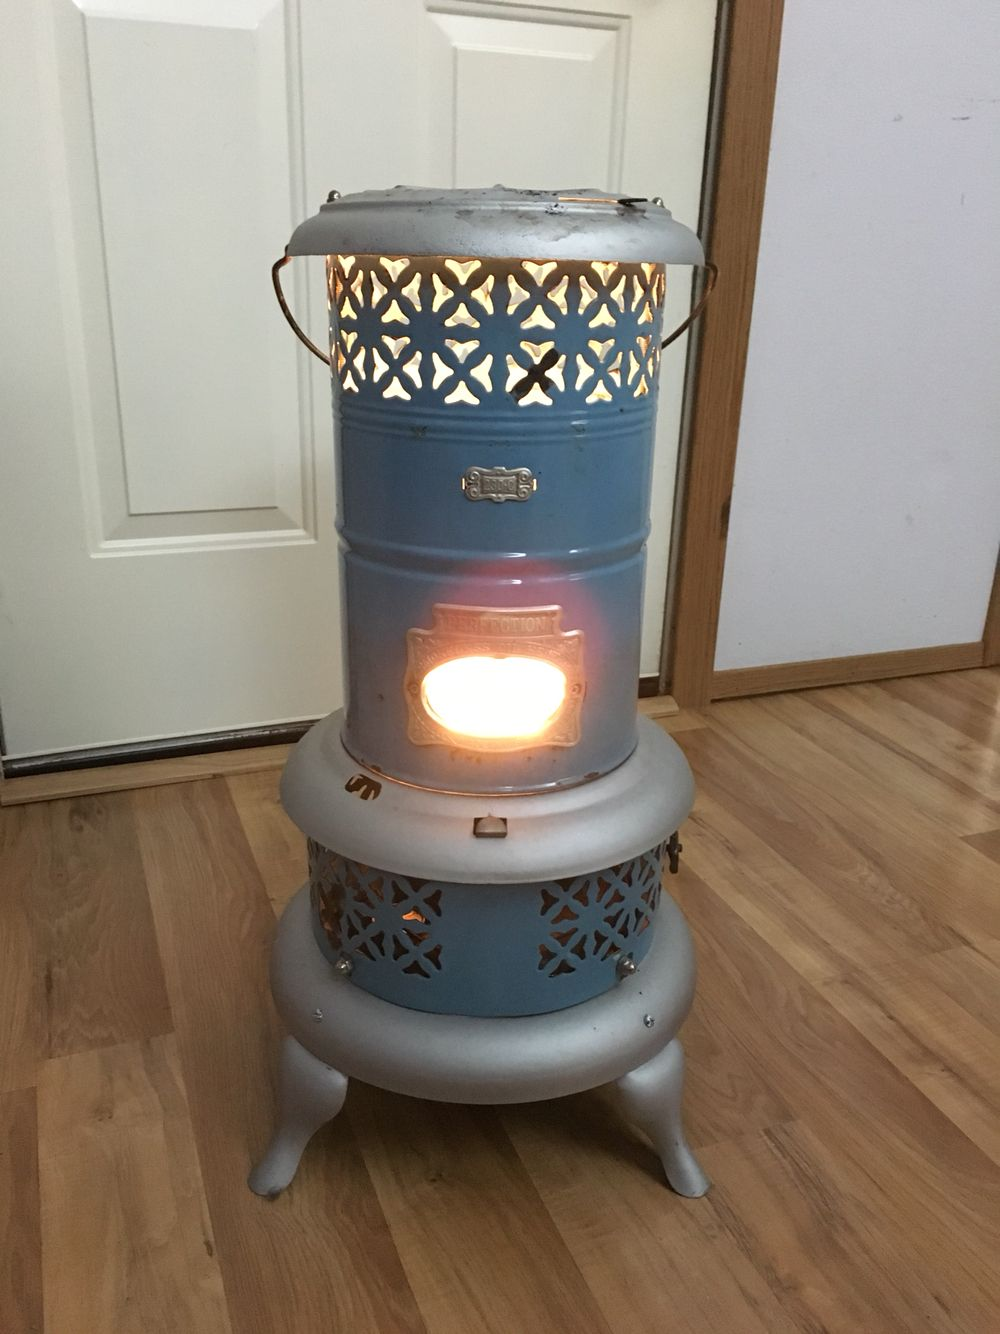 Perfection Kerosene Heater Vintage Kerosene Heater Coleman